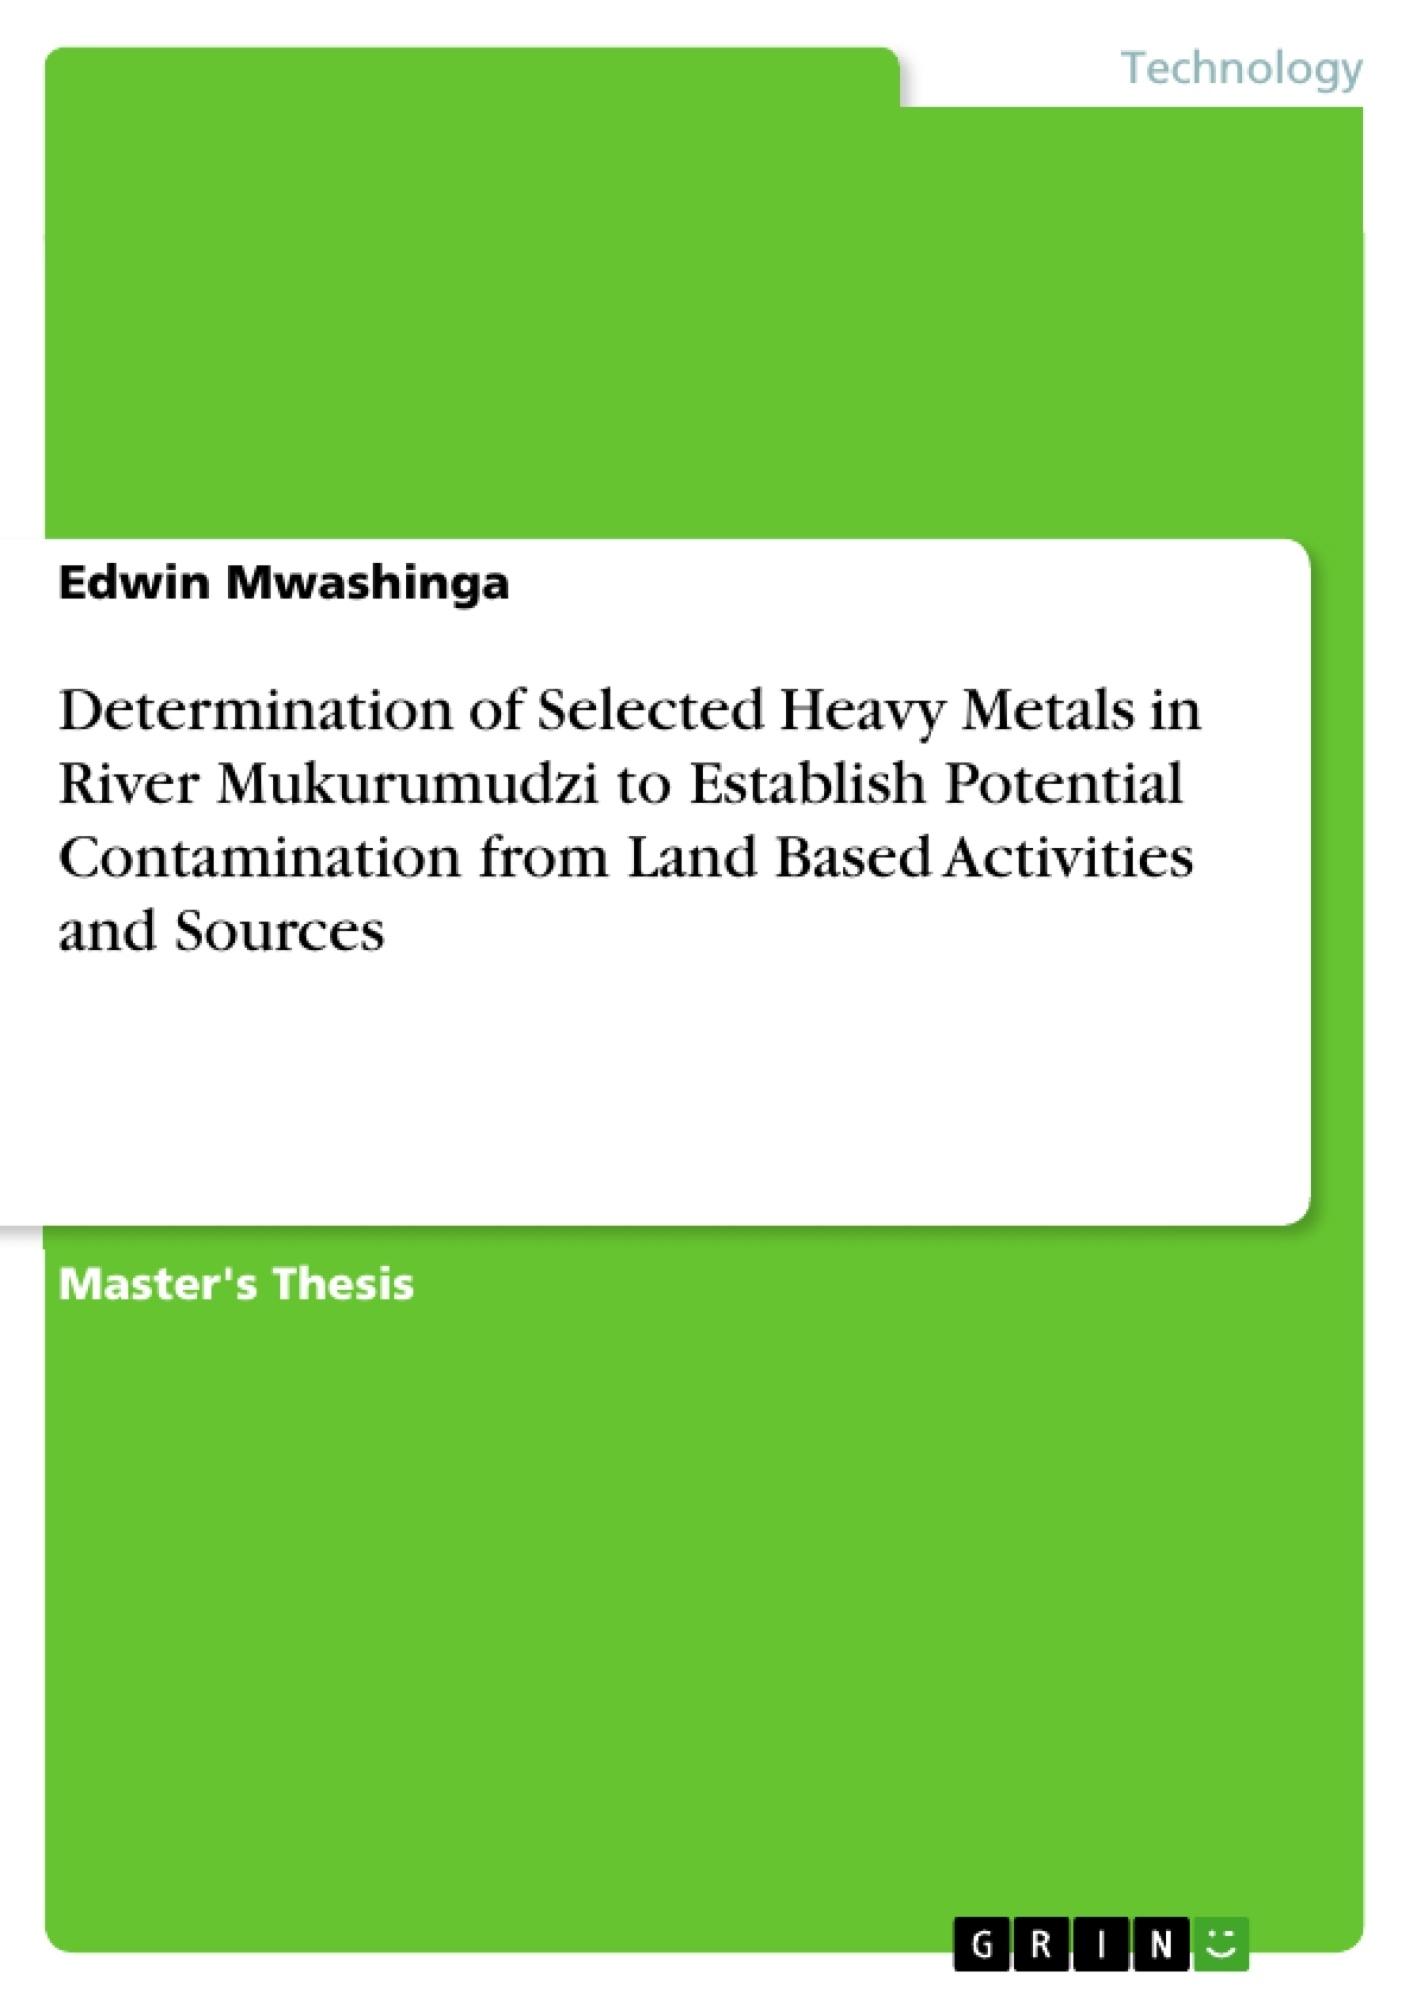 GRIN - Determination of Selected Heavy Metals in River Mukurumudzi to  Establish Potential Contamination from Land Based Activities and Sources